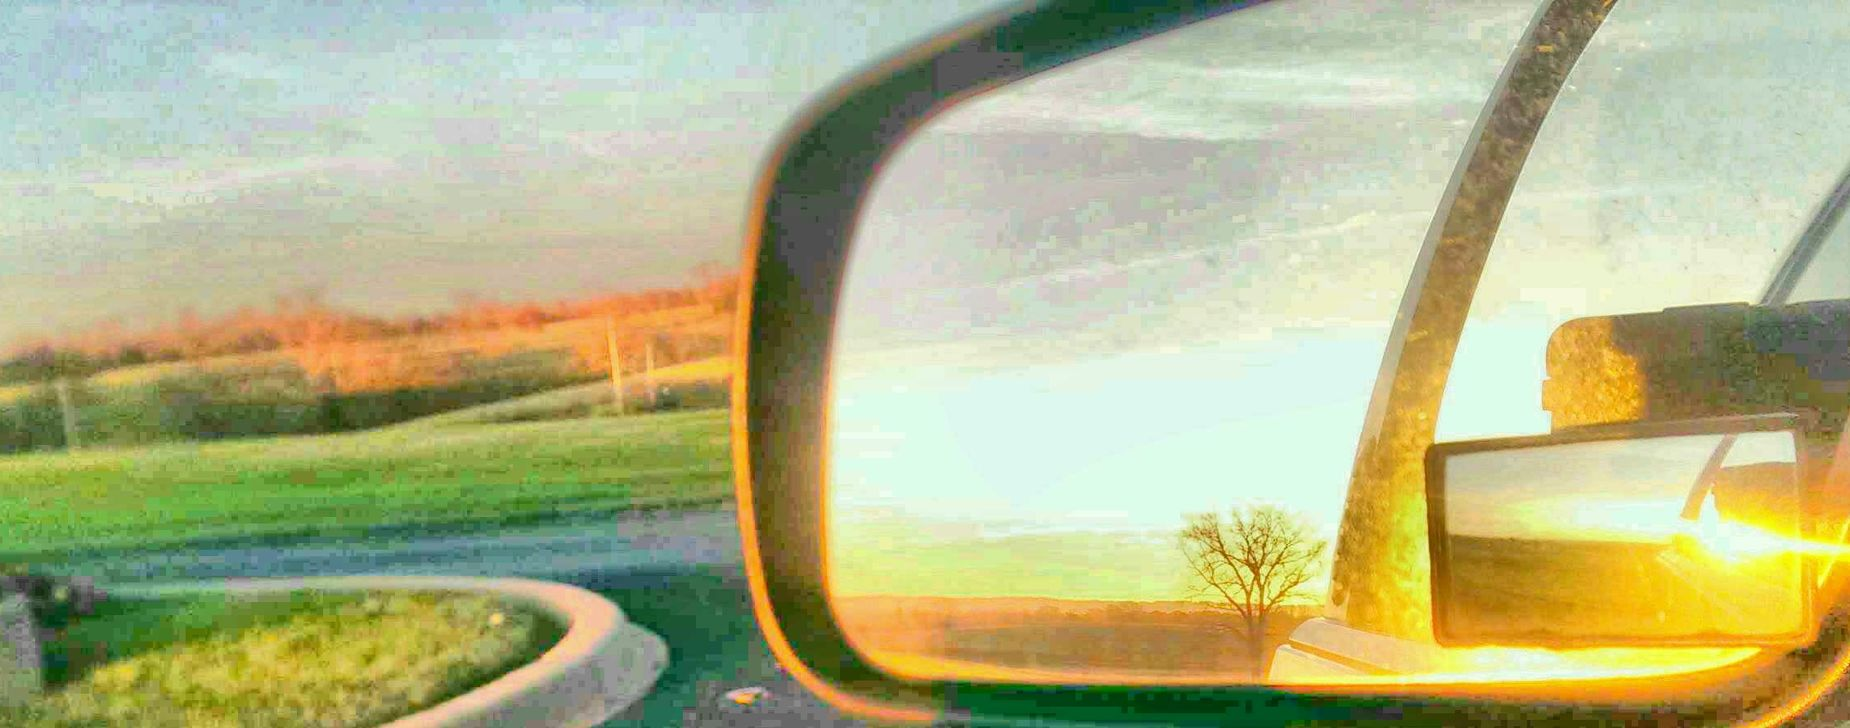 reflecting Sideviewmirrorshot Sideviewmirror Sunset Colors